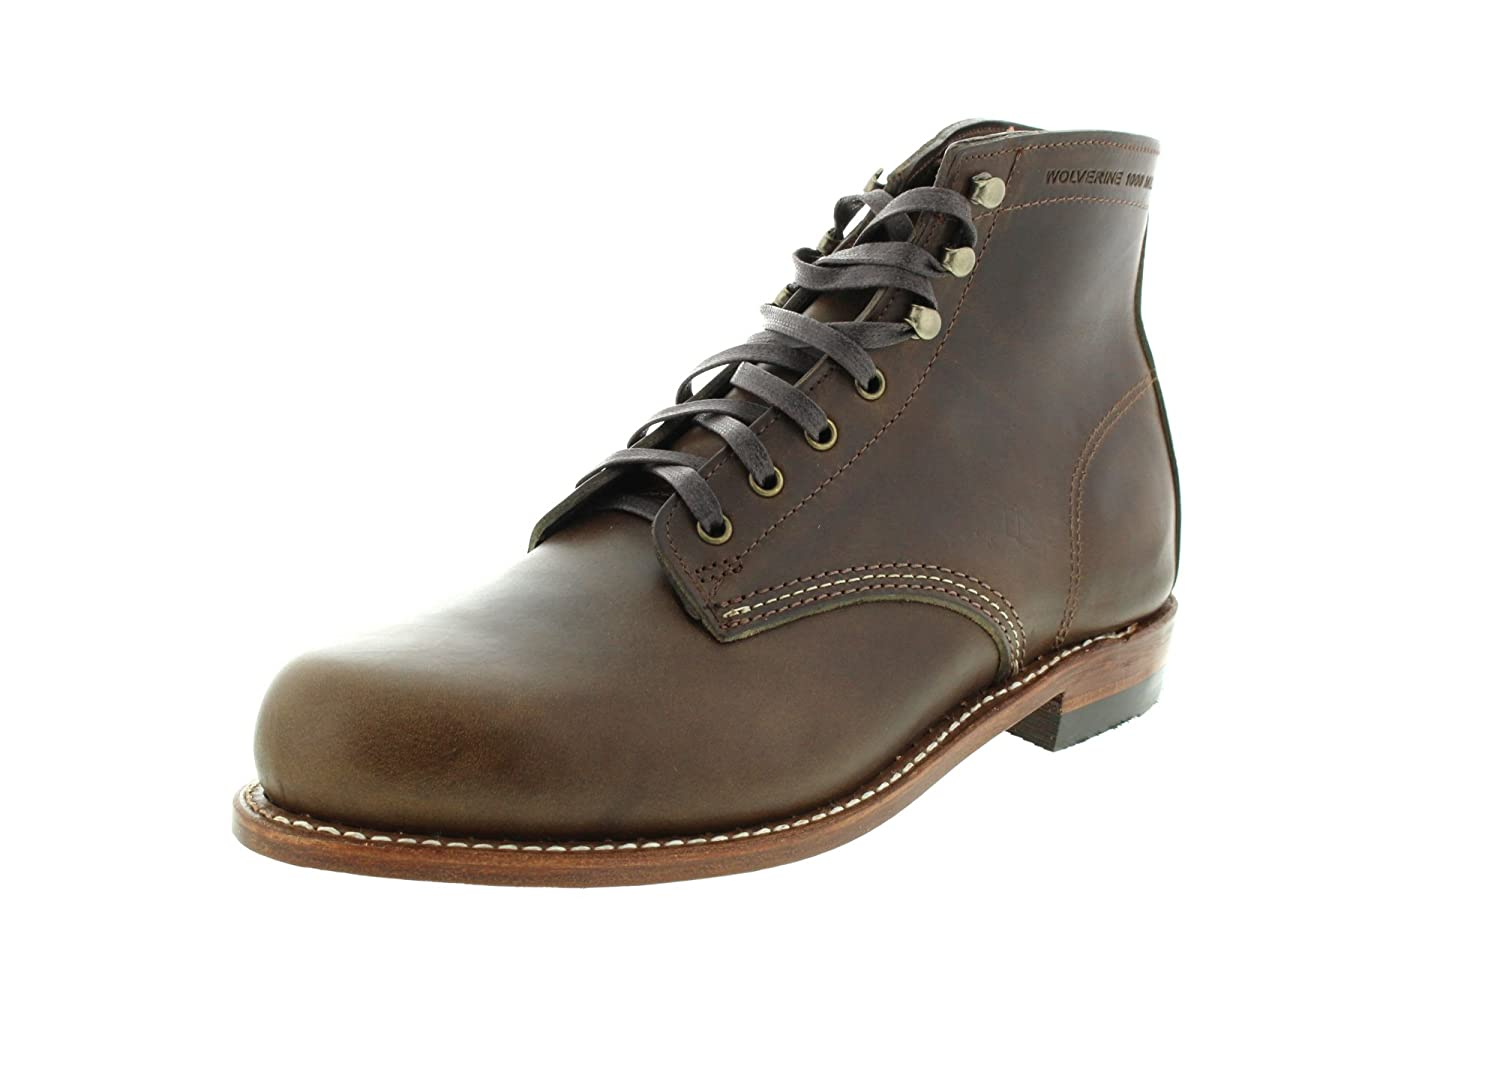 Wolverine 1000 Mile Men's Wolverine 1000 Mile Boots B01N9HAMW9 7 D(M) US|Dark Olive Leather